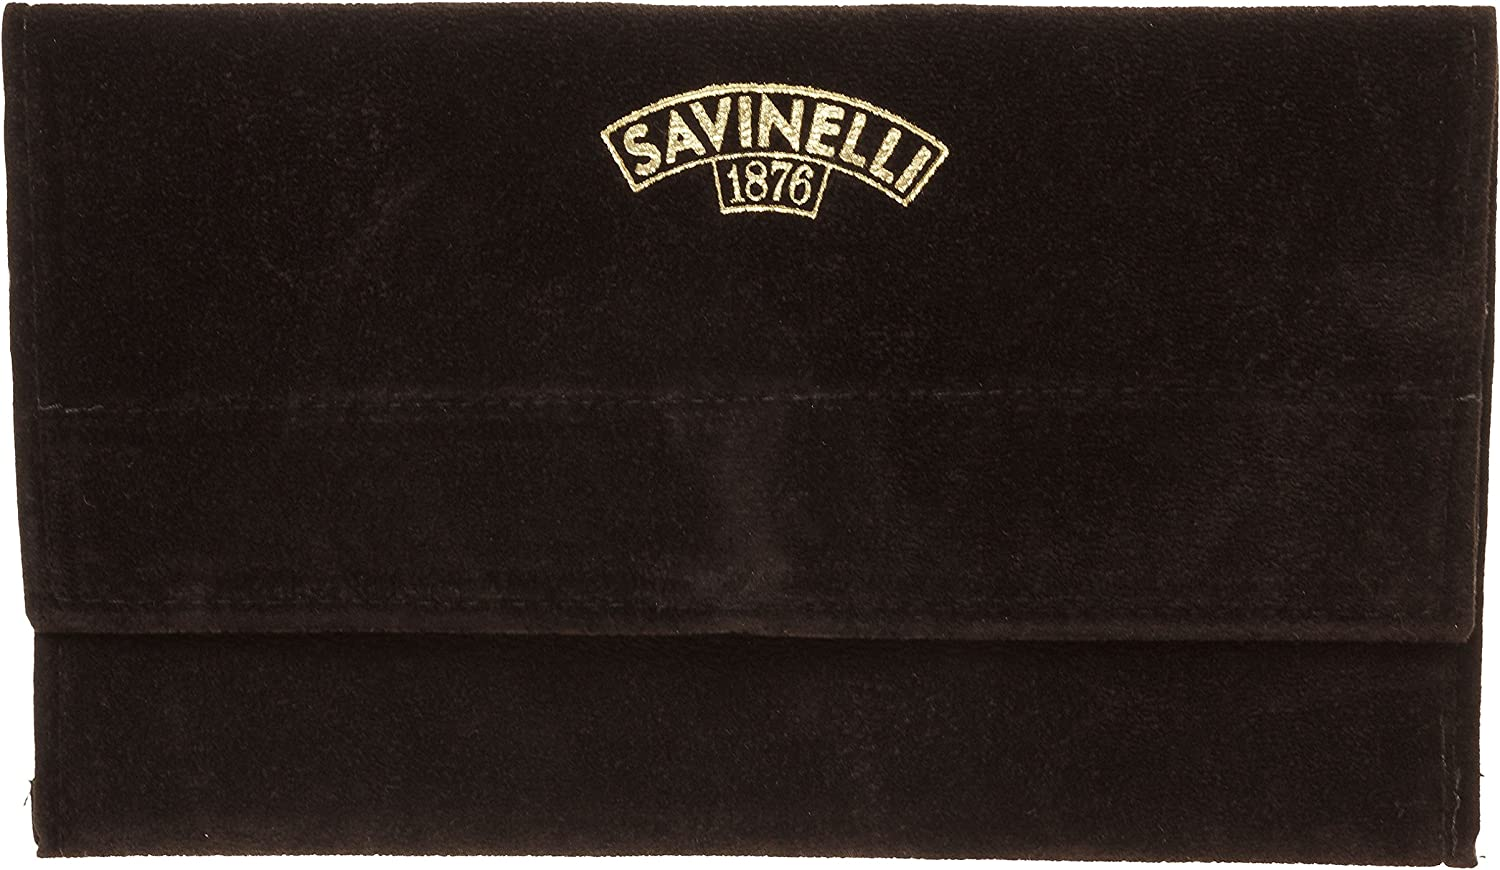 Savinelli Velvet Tobacco Limited time sale Pipe Pouch - Brown low-pricing